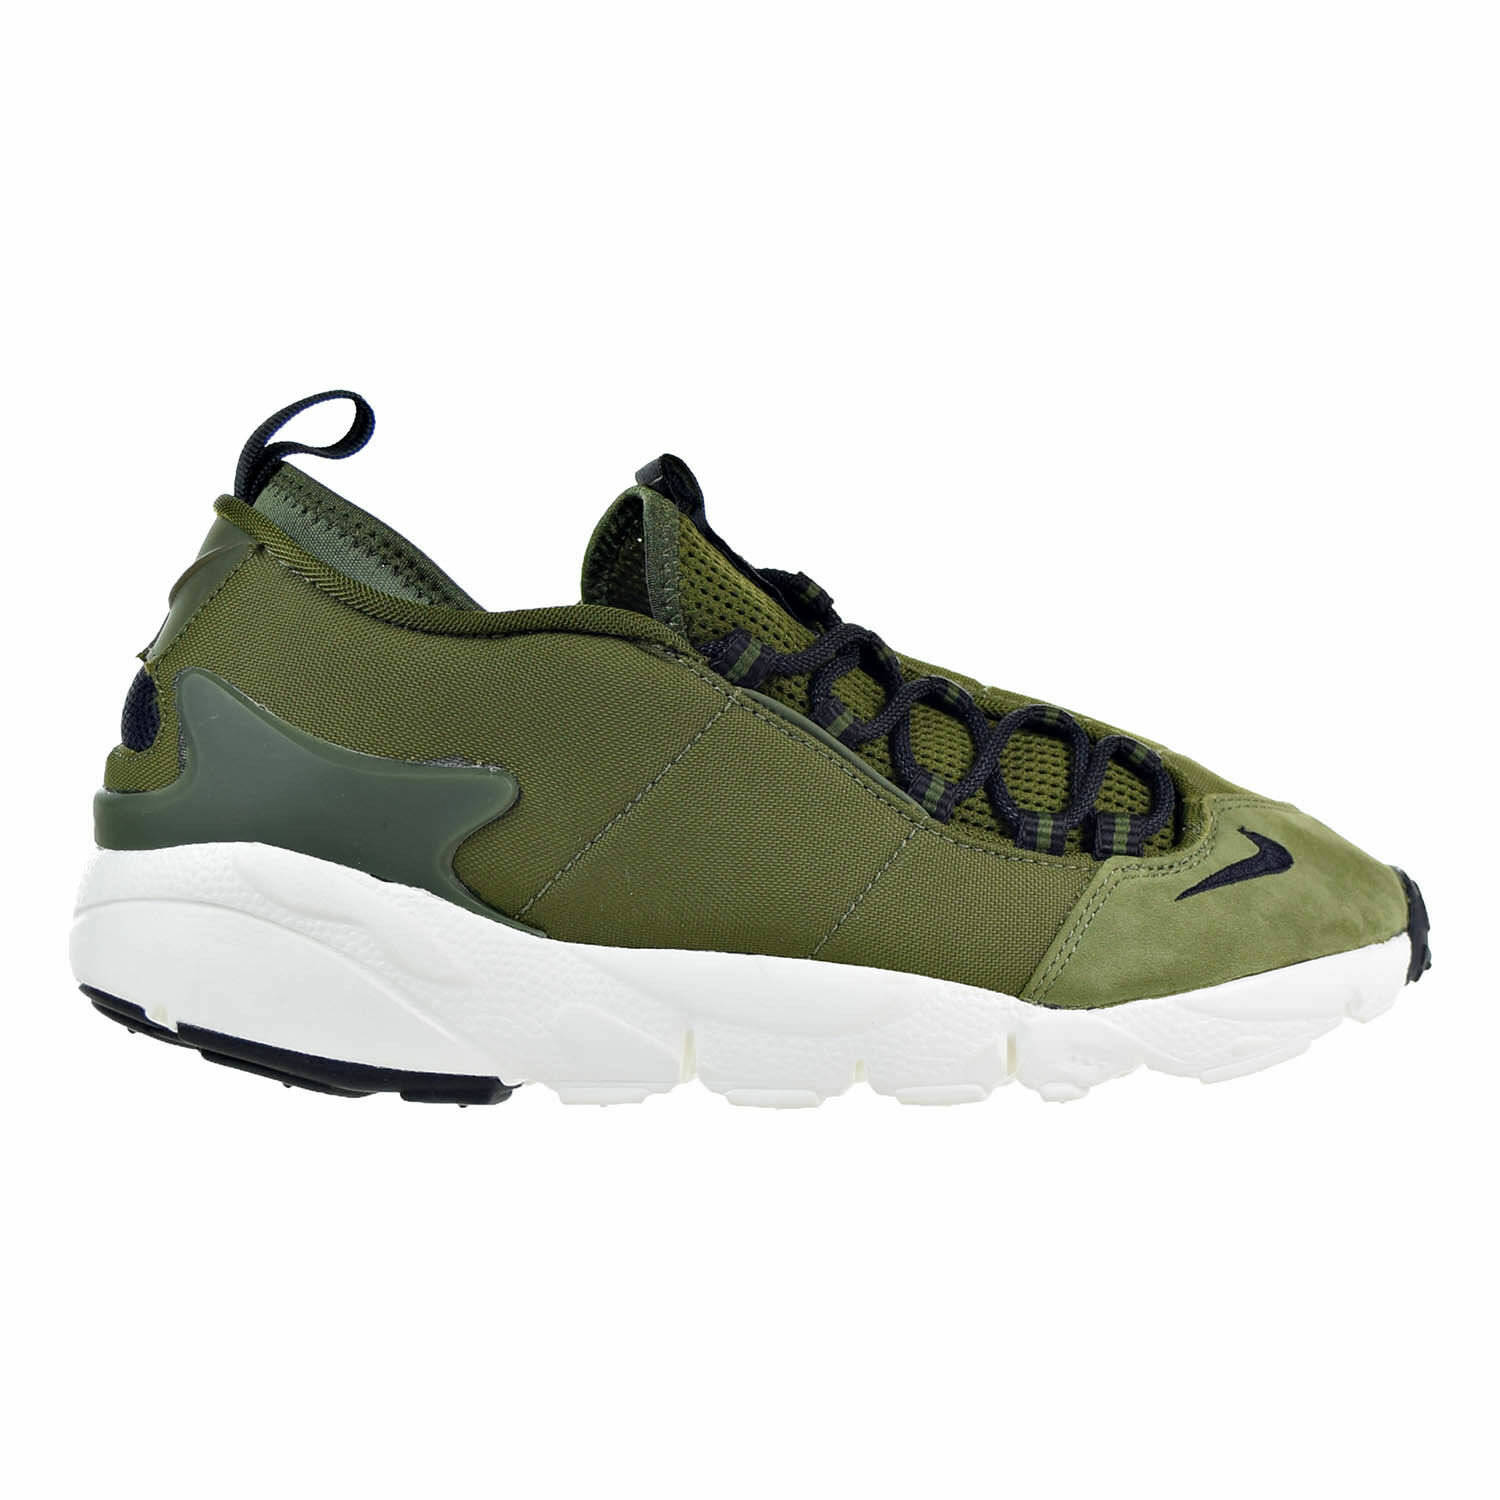 Brand New Nike Air Footscape NM Men's Athletic Fashion Sneakers Price reduction Seasonal clearance sale